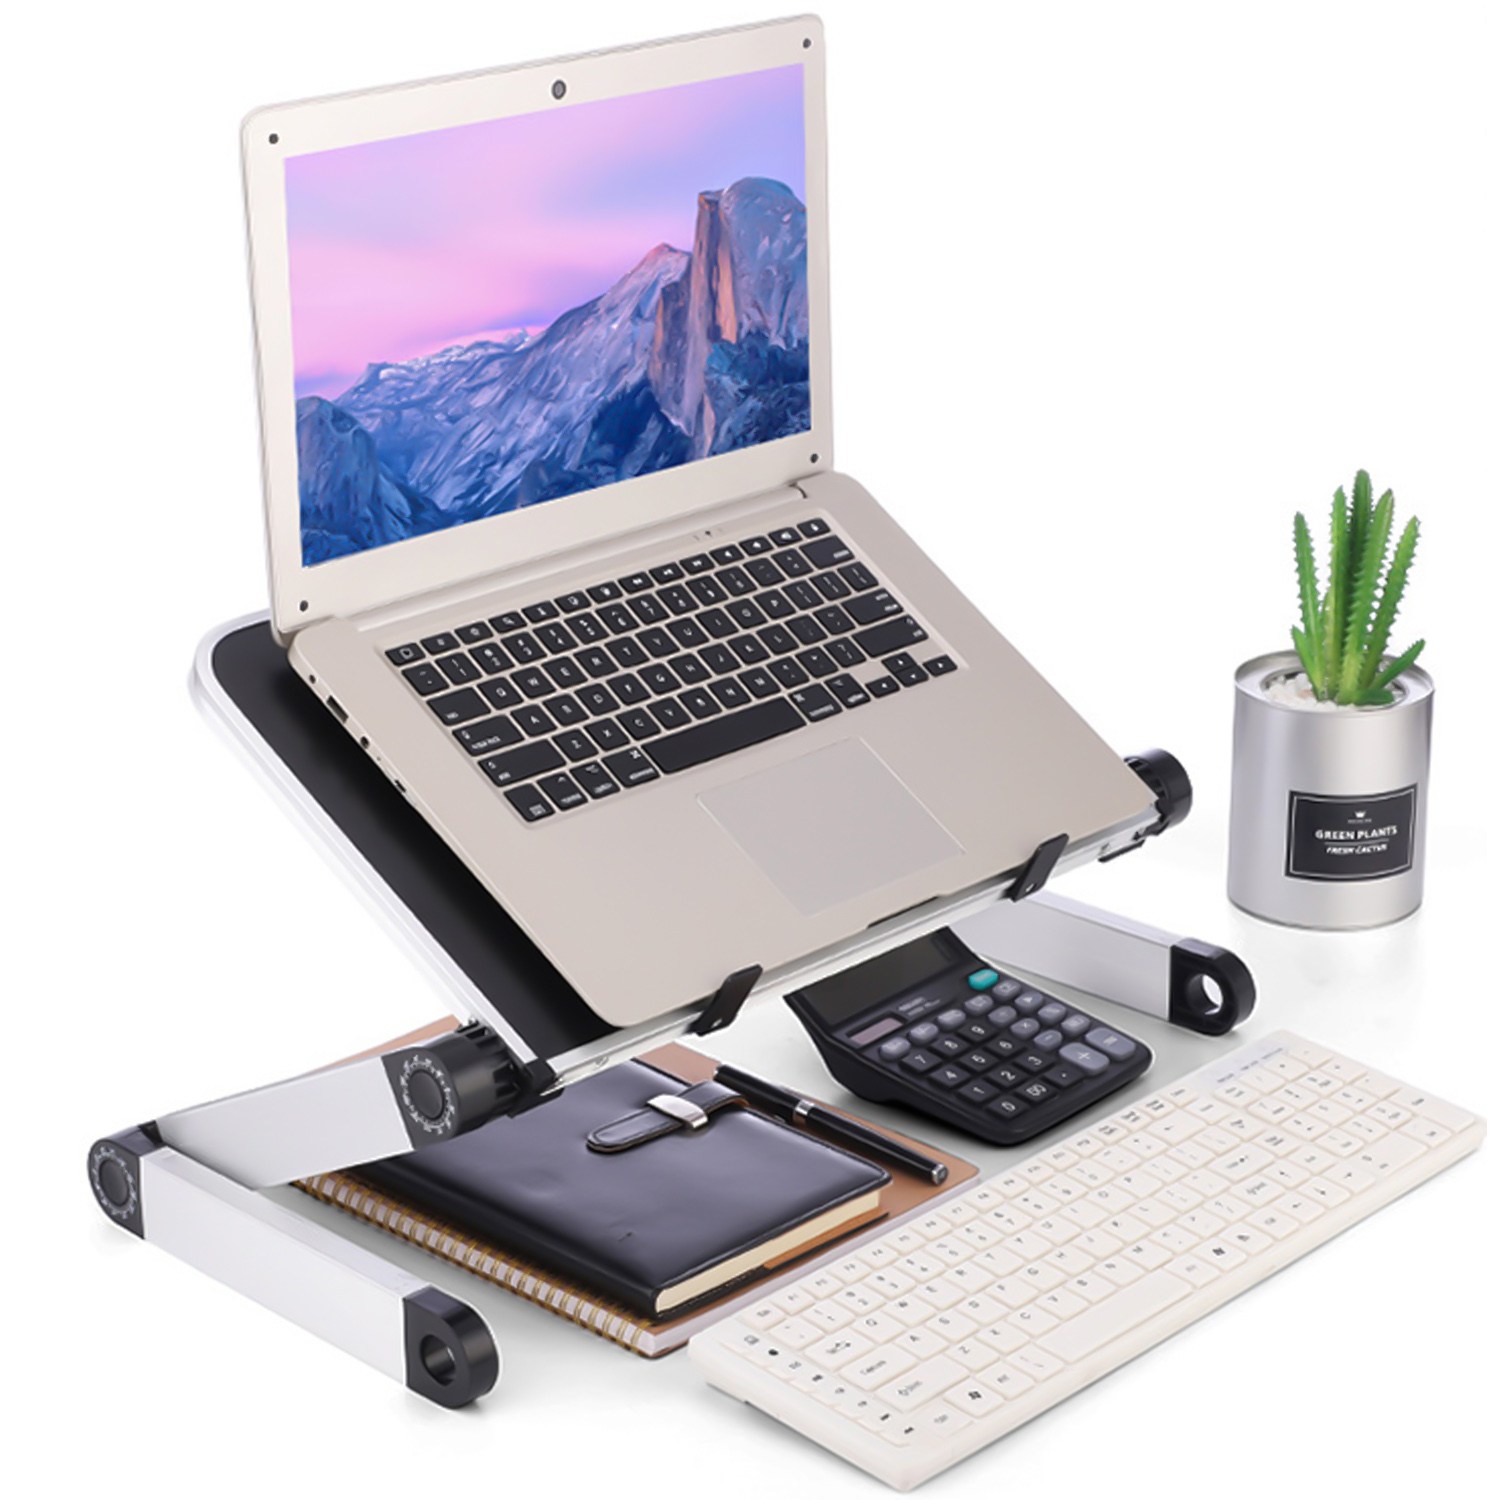 360 Degree Adjustable Foldable Laptop Support Desk Stand Holder Riser for Home Office School Indoor Outdoor Use Black